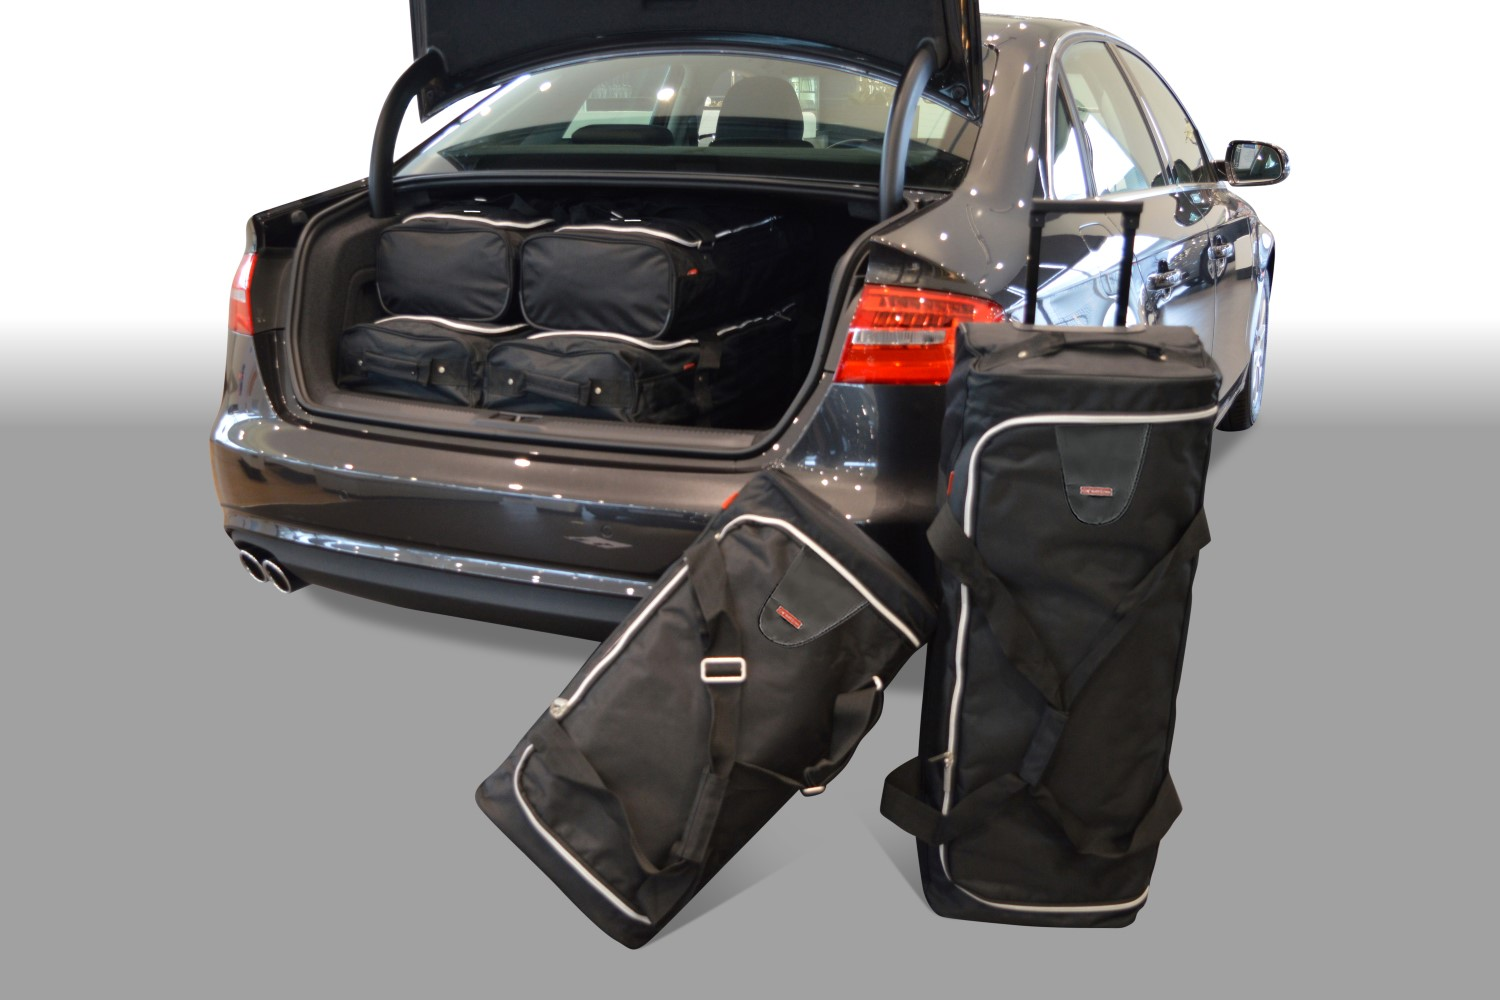 Audi A4 (B8) 2008-2015 4 door Car-Bags.com travel bag set (1)